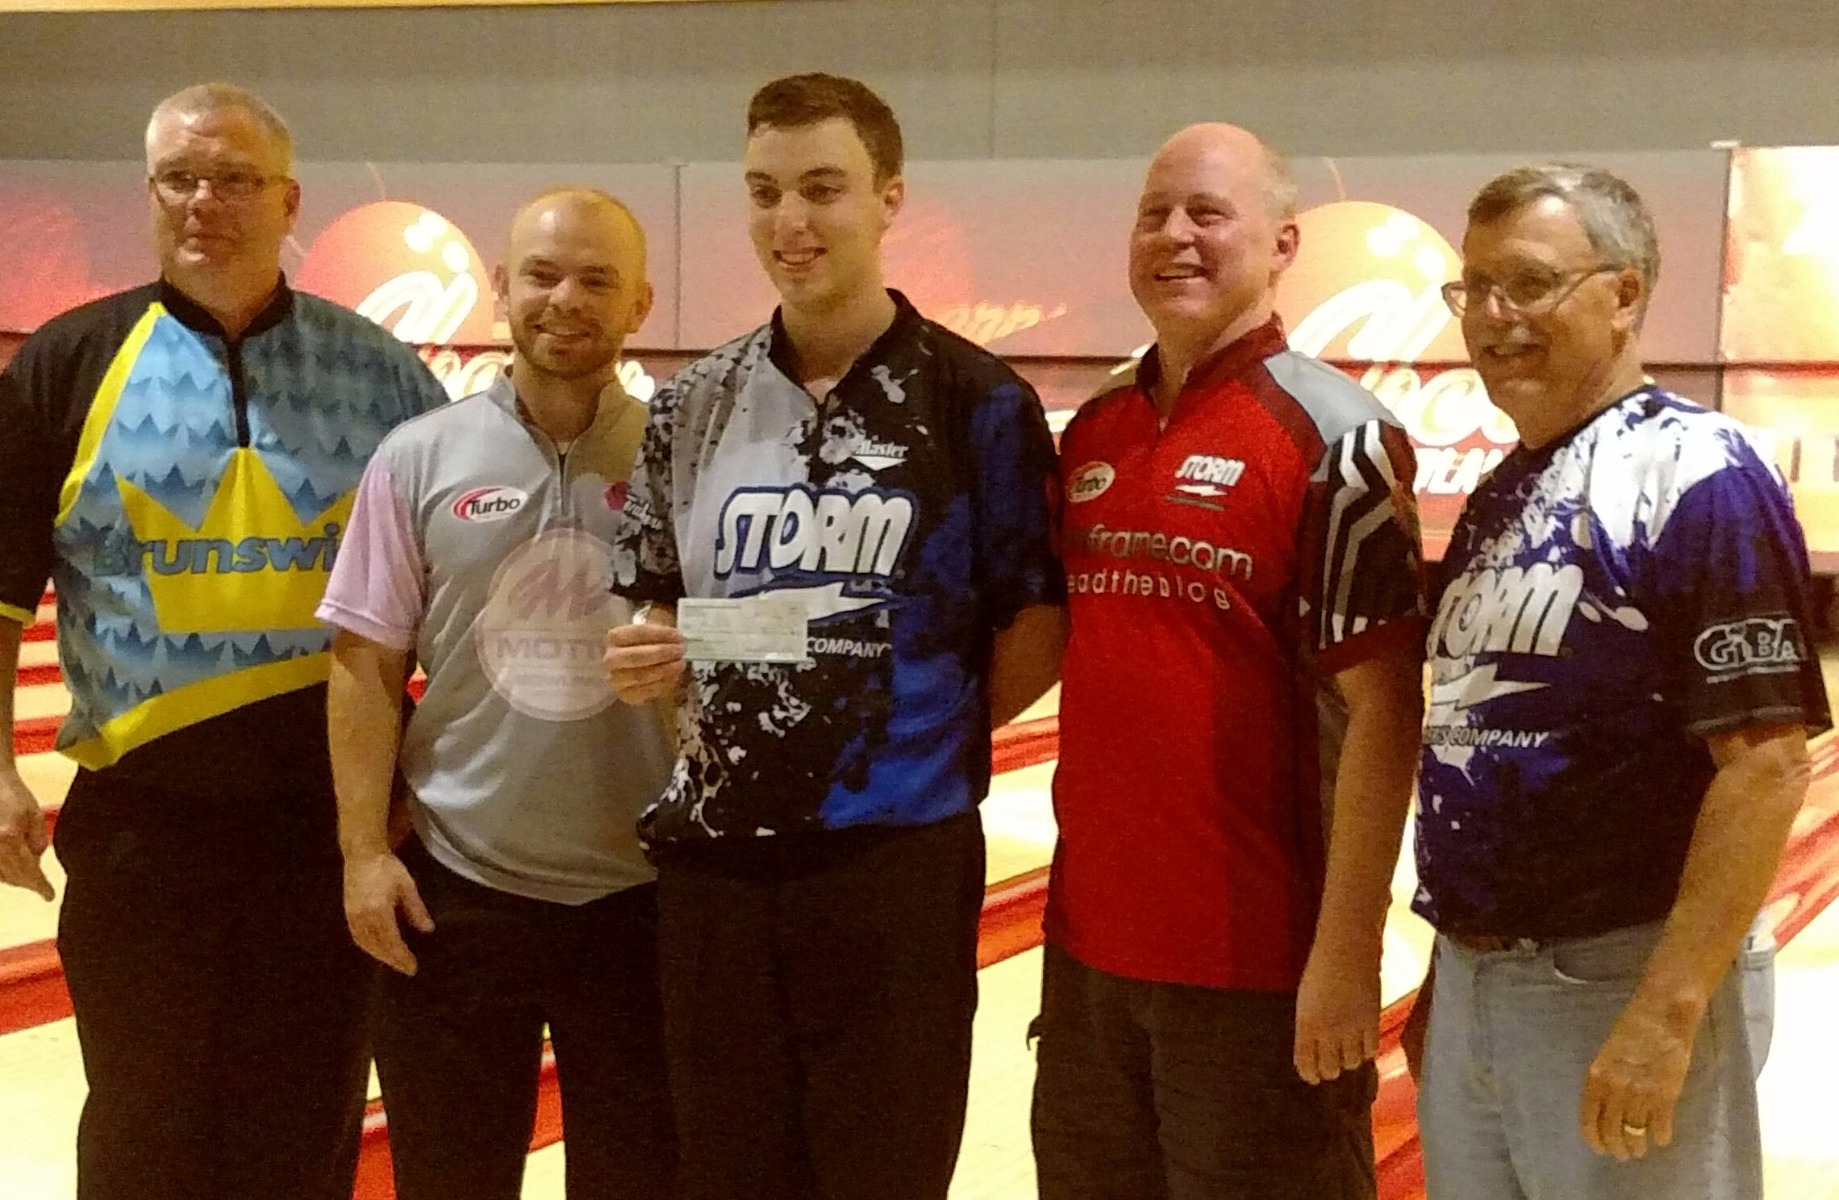 Adam Morse, center, with the $2,700 first-place check after beating Brad Miller, second from left, in the title match of the 2017 11thFrame.com Open. Cherry Lanes manager Bob Hochrein is at the left, I am second from the right, and GIBA administrator Joe Engelkes is at the right. Photo by Susie Fever.